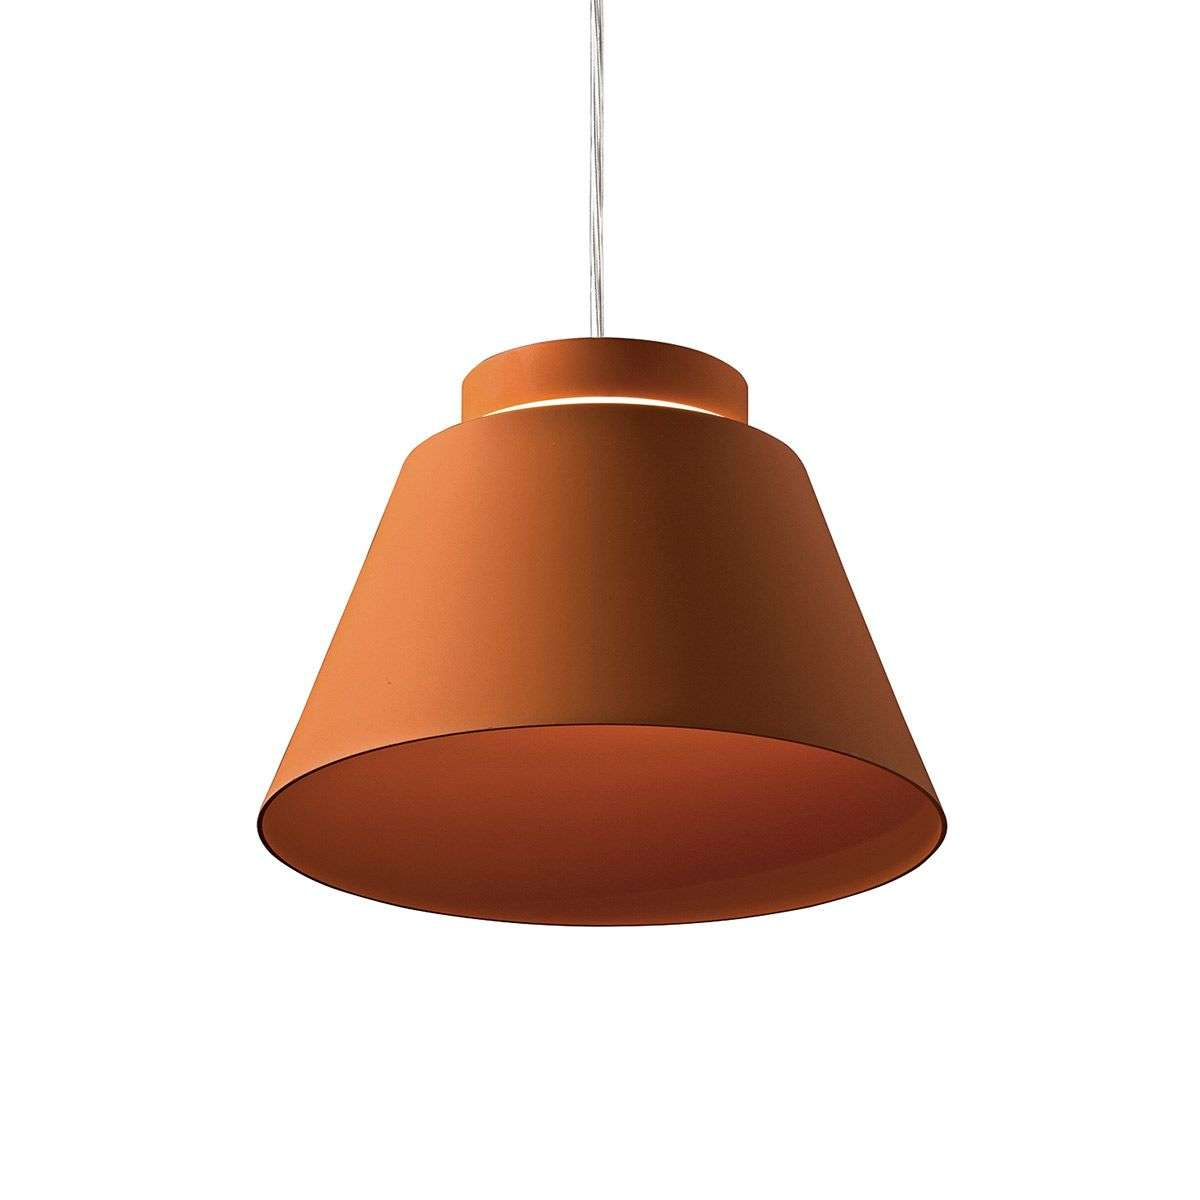 Brick red colour LED hanging l& Lia-3039202-31  sc 1 st  Lights.co.uk & Brick red colour - LED hanging lamp Lia | Lights.co.uk